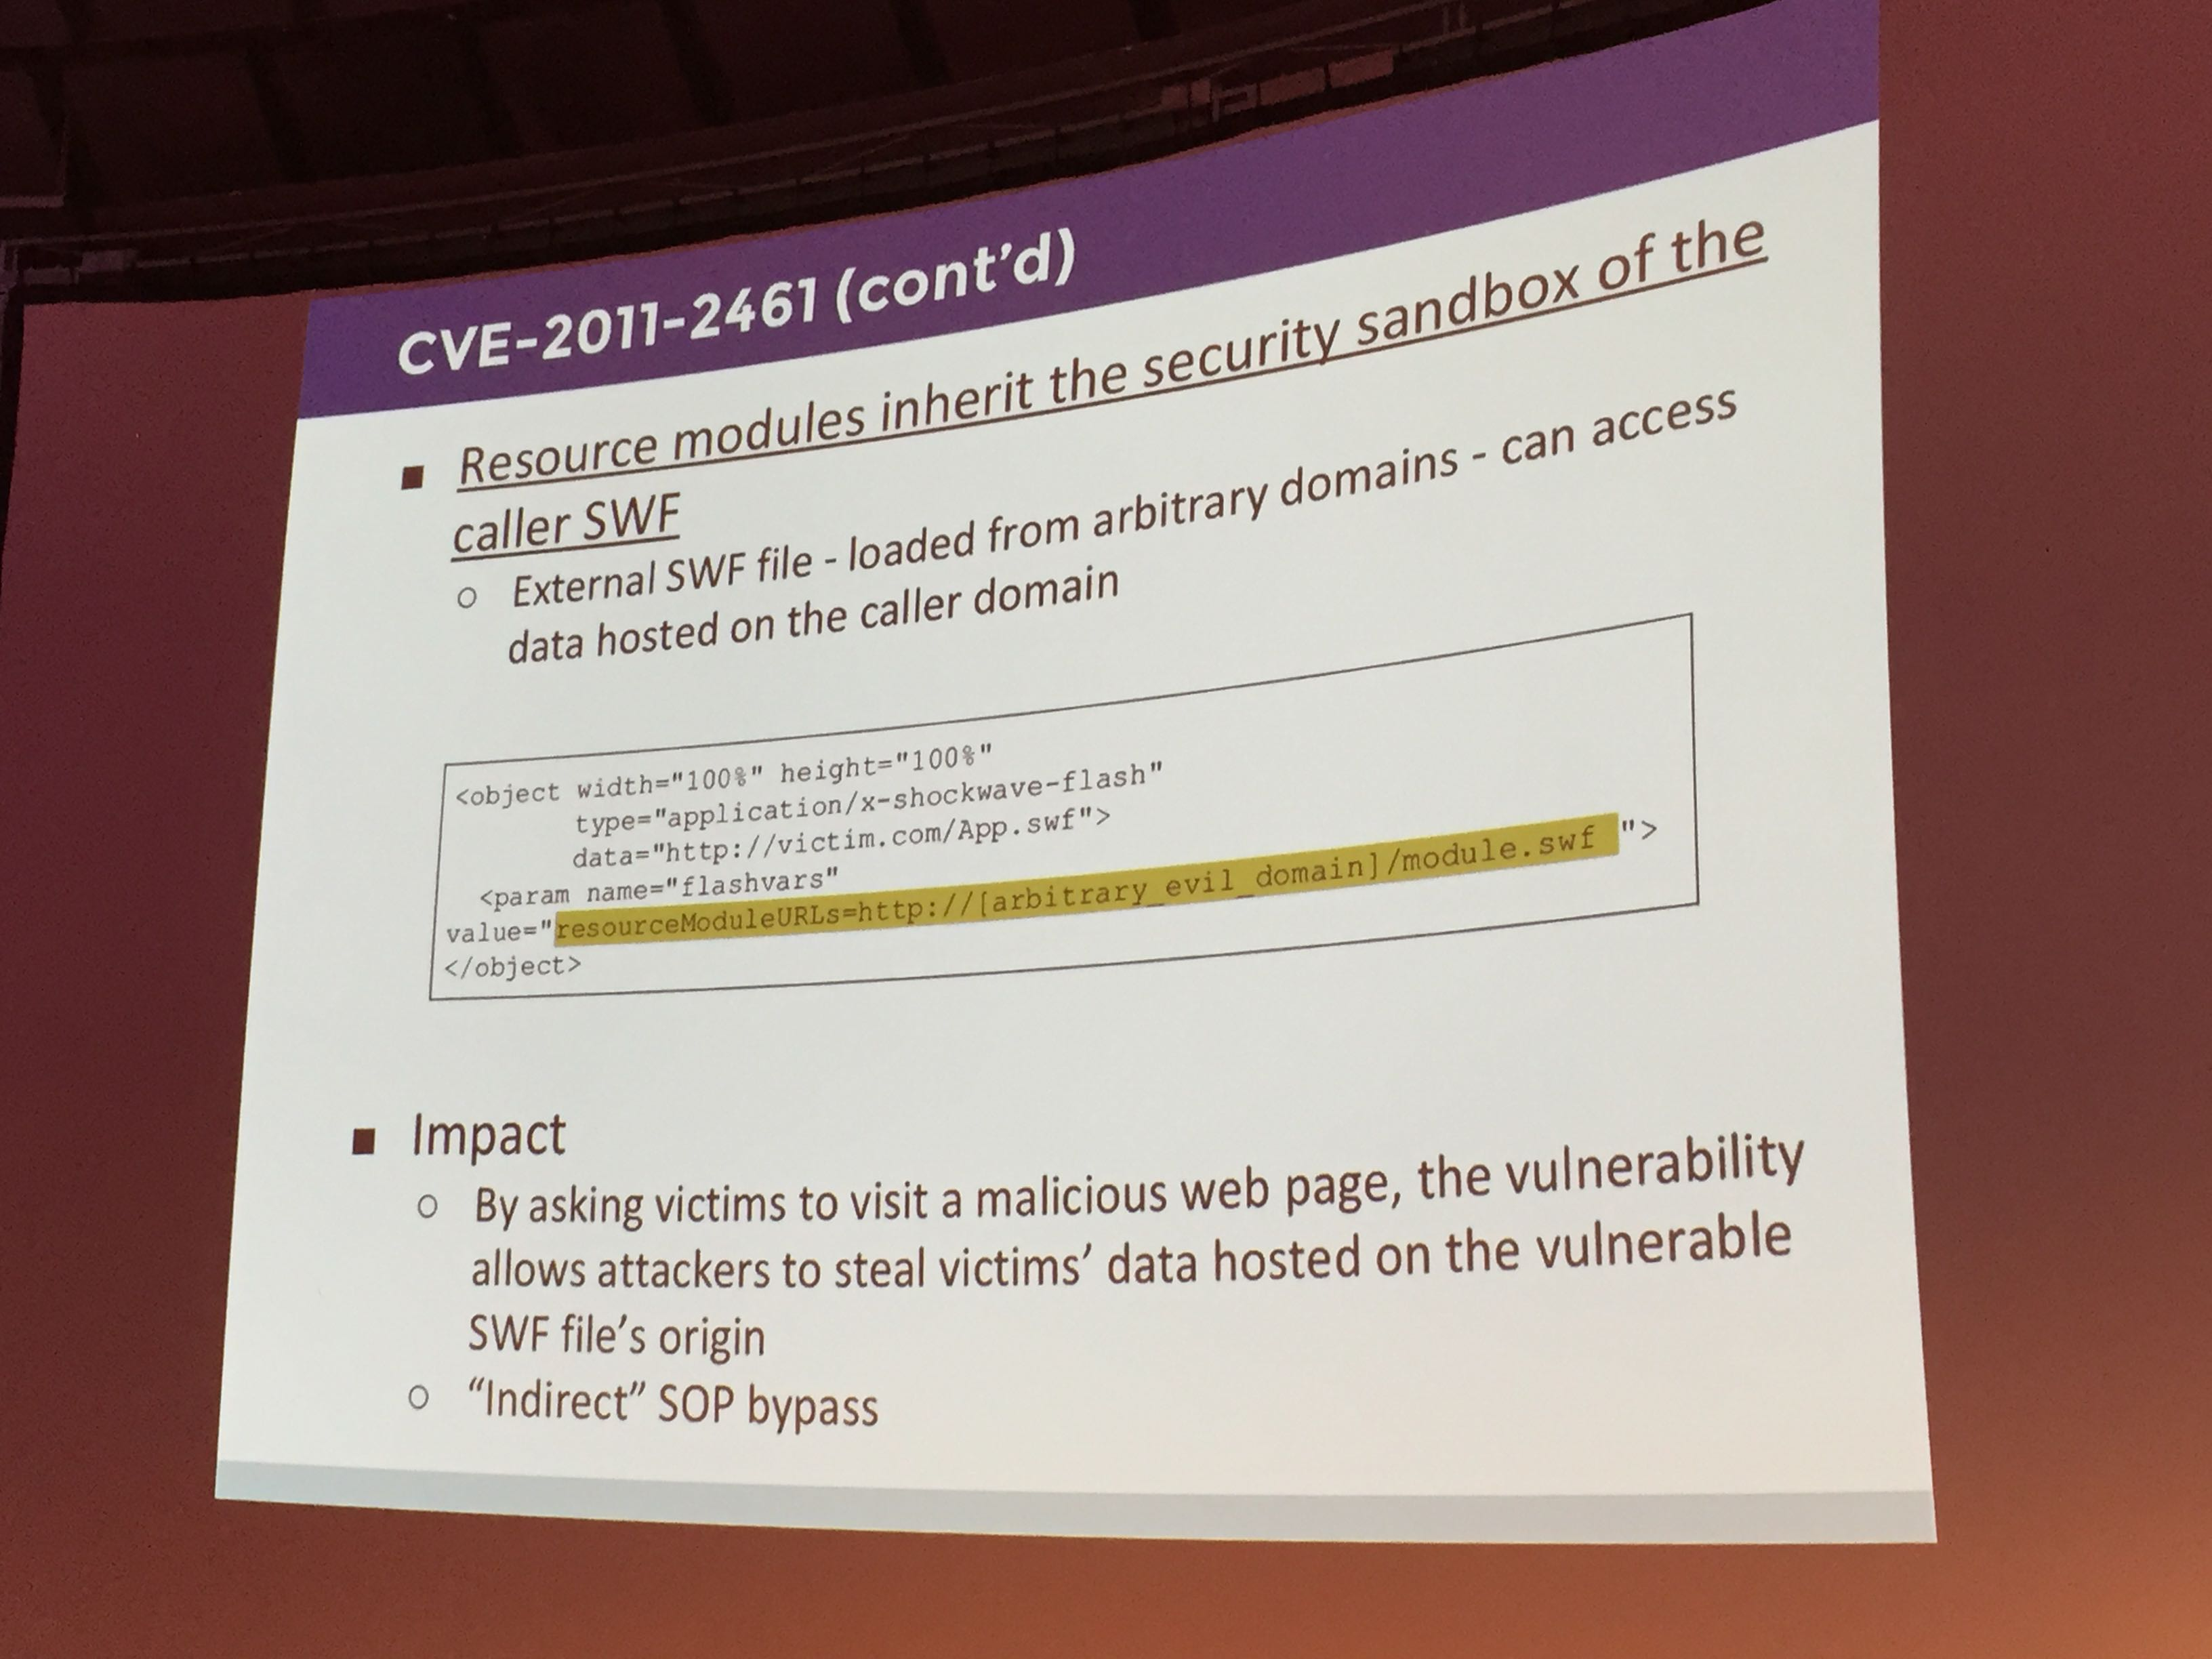 Adobe CVE-2011-2461 flaw is exploitable by 4 yearsSecurity Affairs